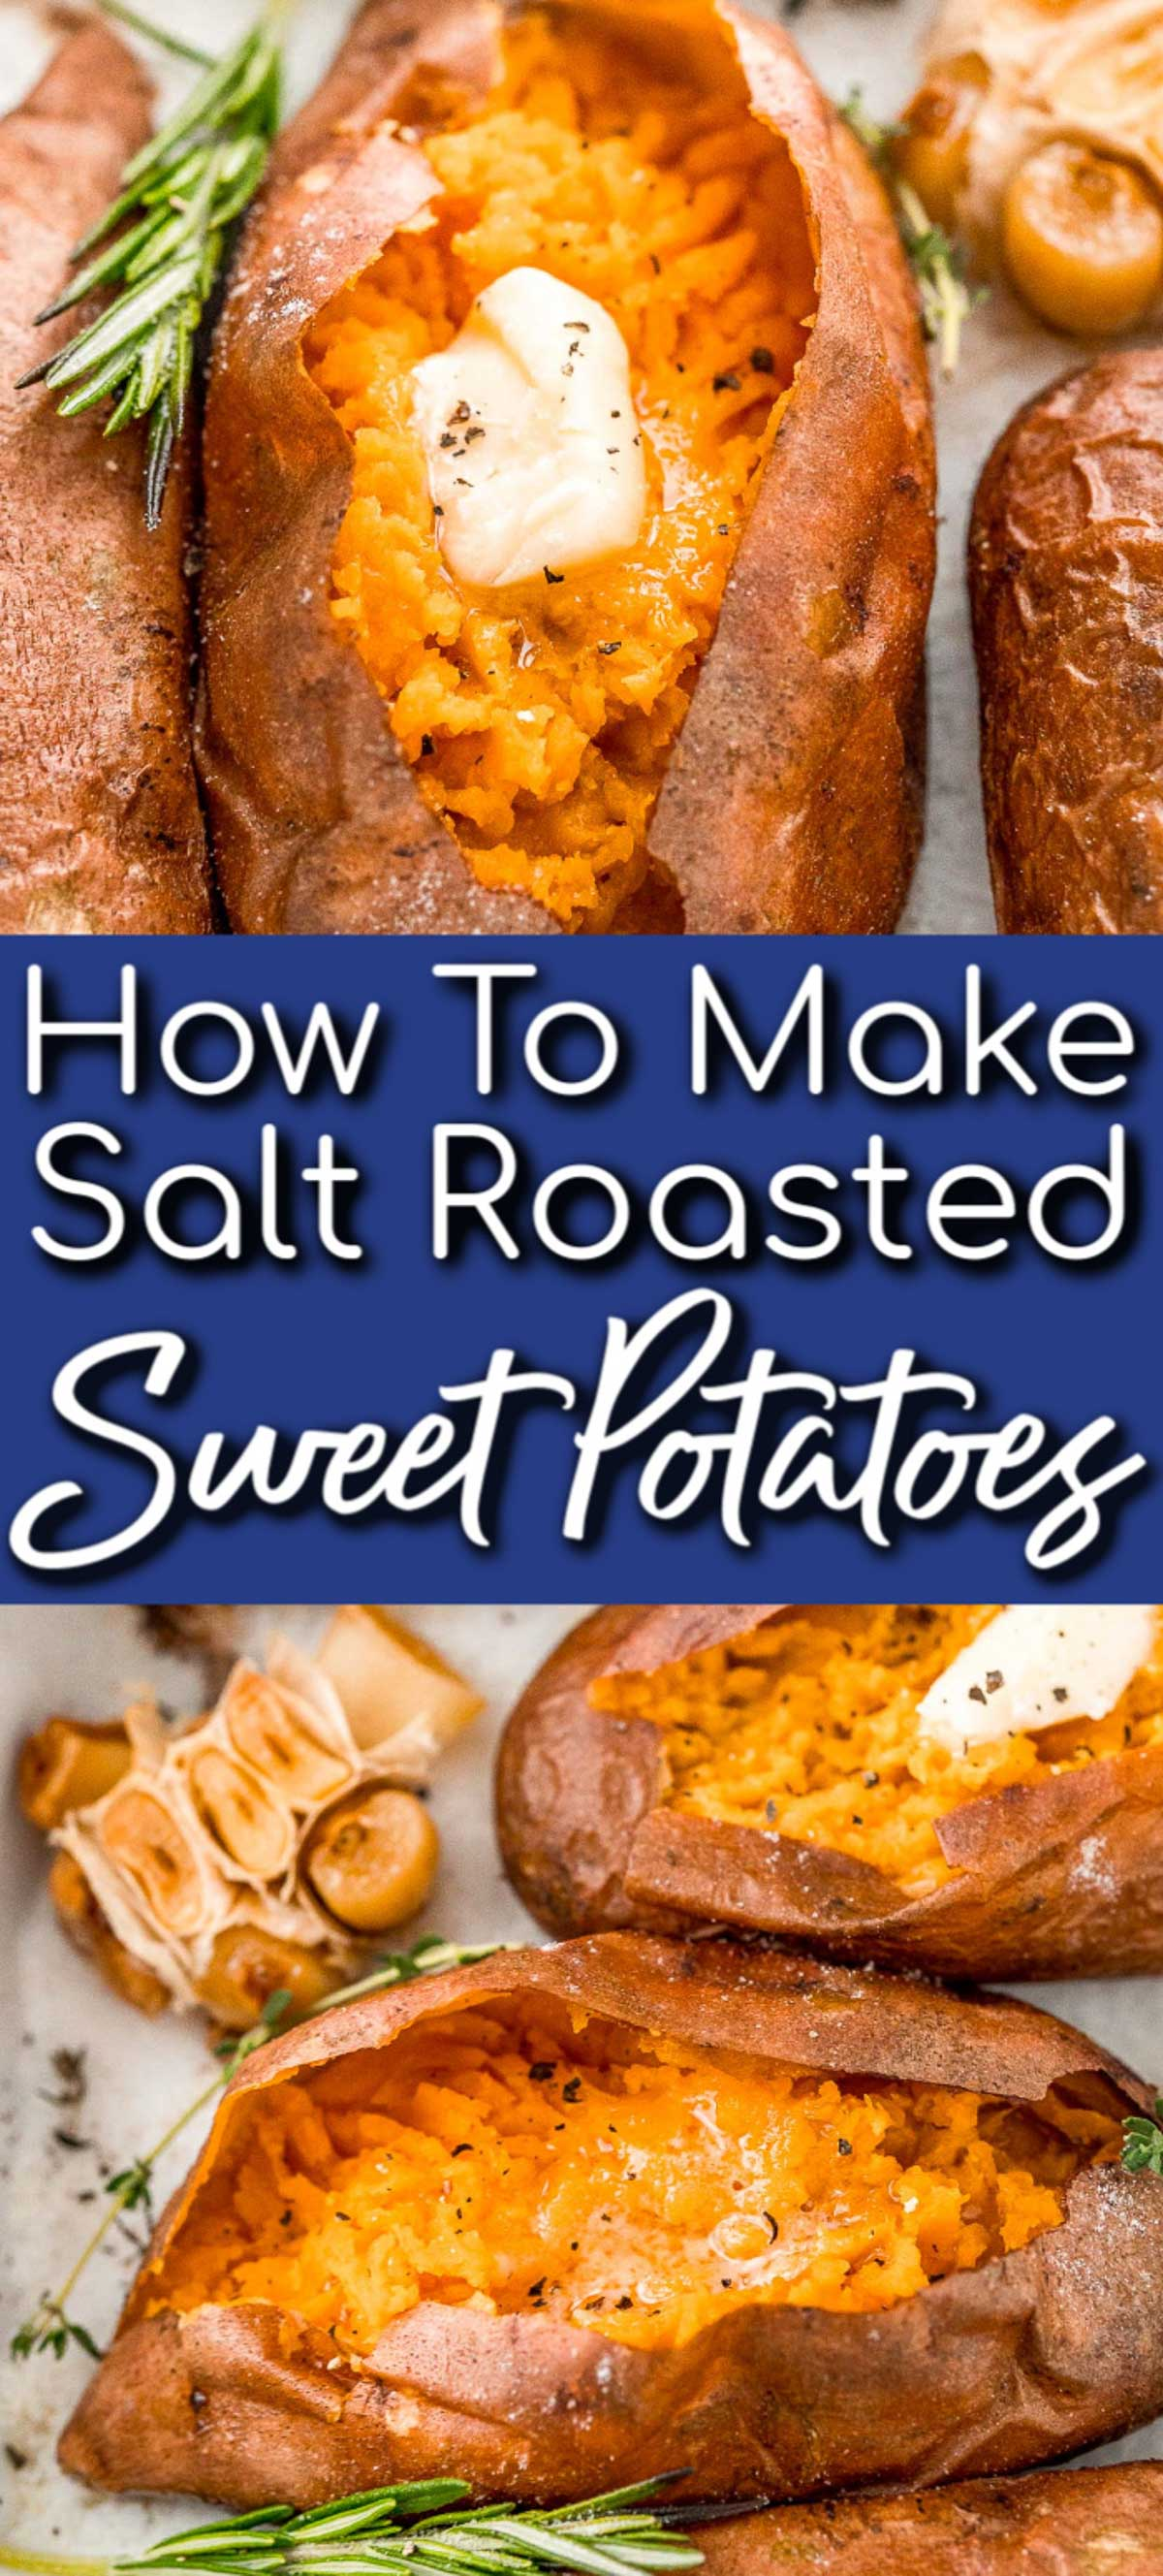 Salt Baked Sweet Potatoes are deliciously tender on the inside with a crispy and salty skin. Herbs and garlic add delicious flavor to this traditional side dish! via @sugarandsoulco